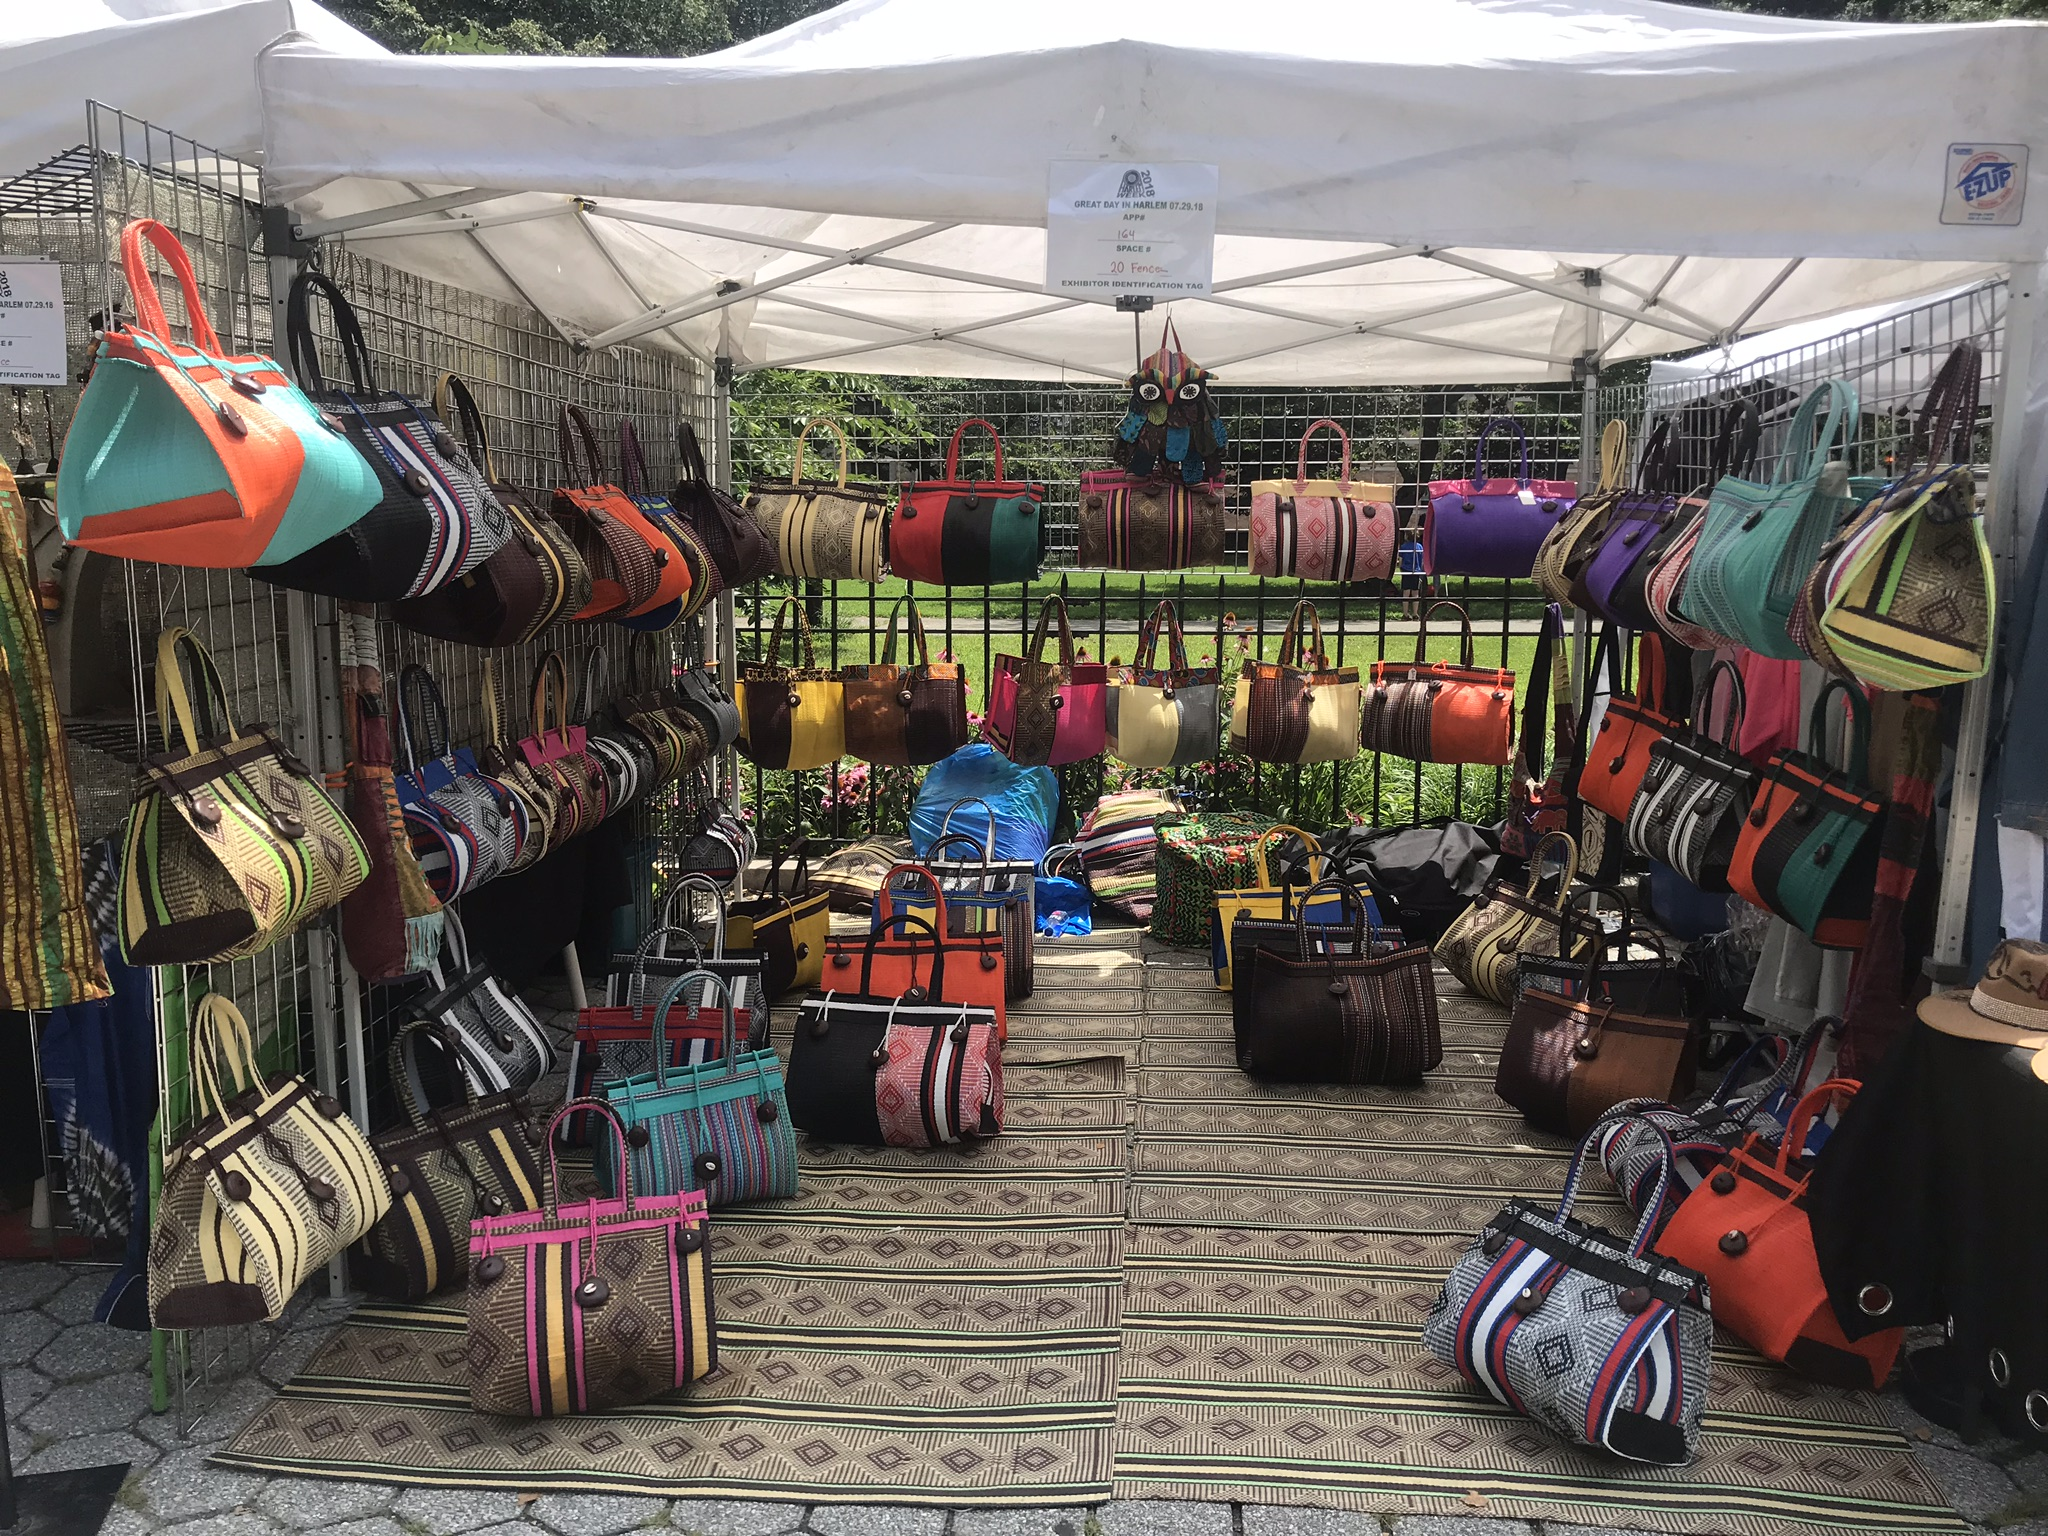 recycled handbag artist Adama Sylla's booth showing many colorful bags